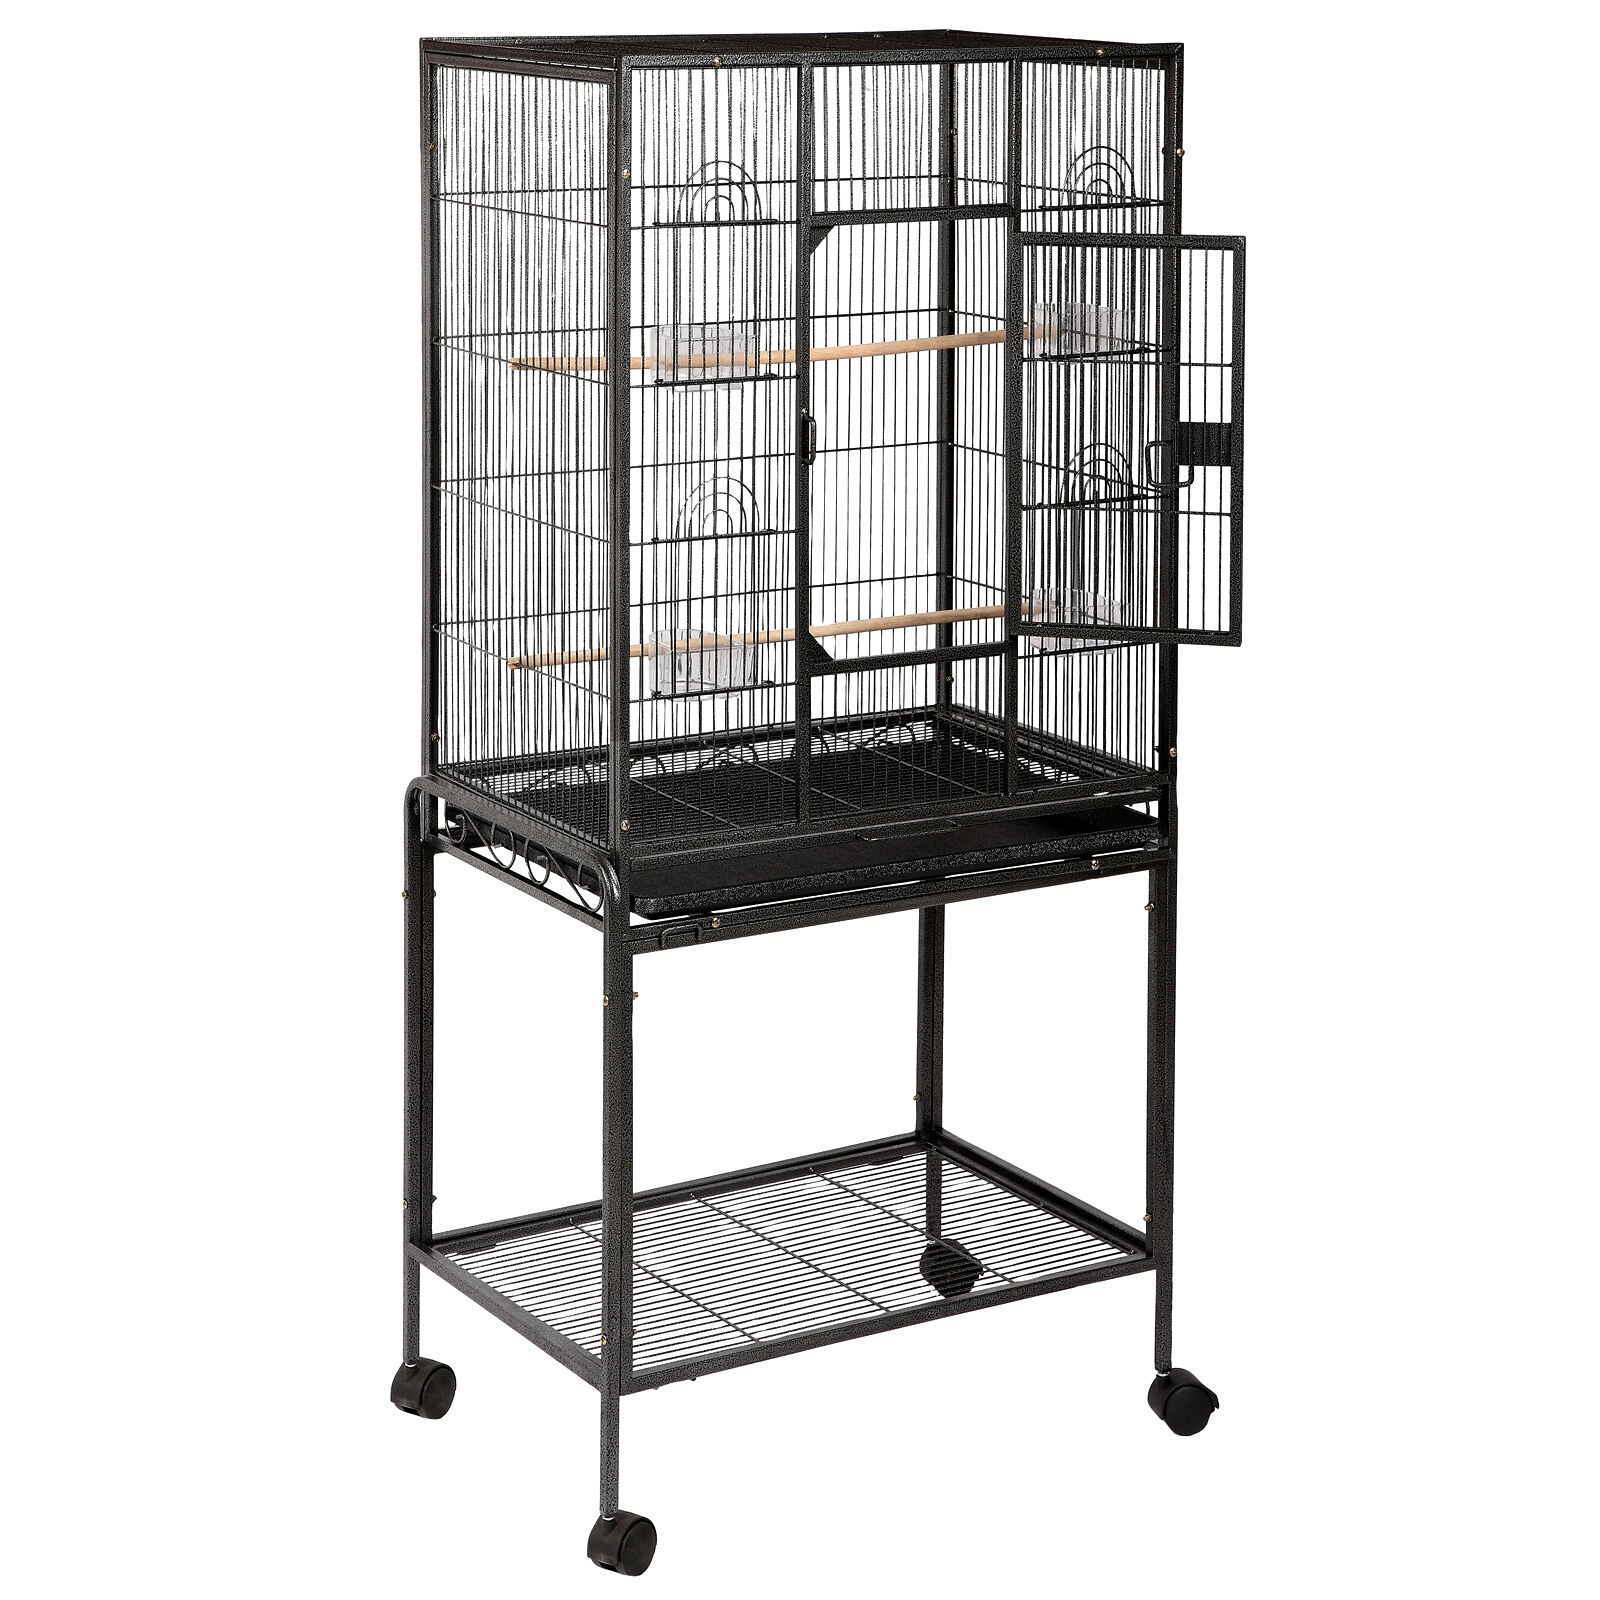 68 large parrot bird cage play top canary parakeet pet supplies w perch stand ebay. Black Bedroom Furniture Sets. Home Design Ideas